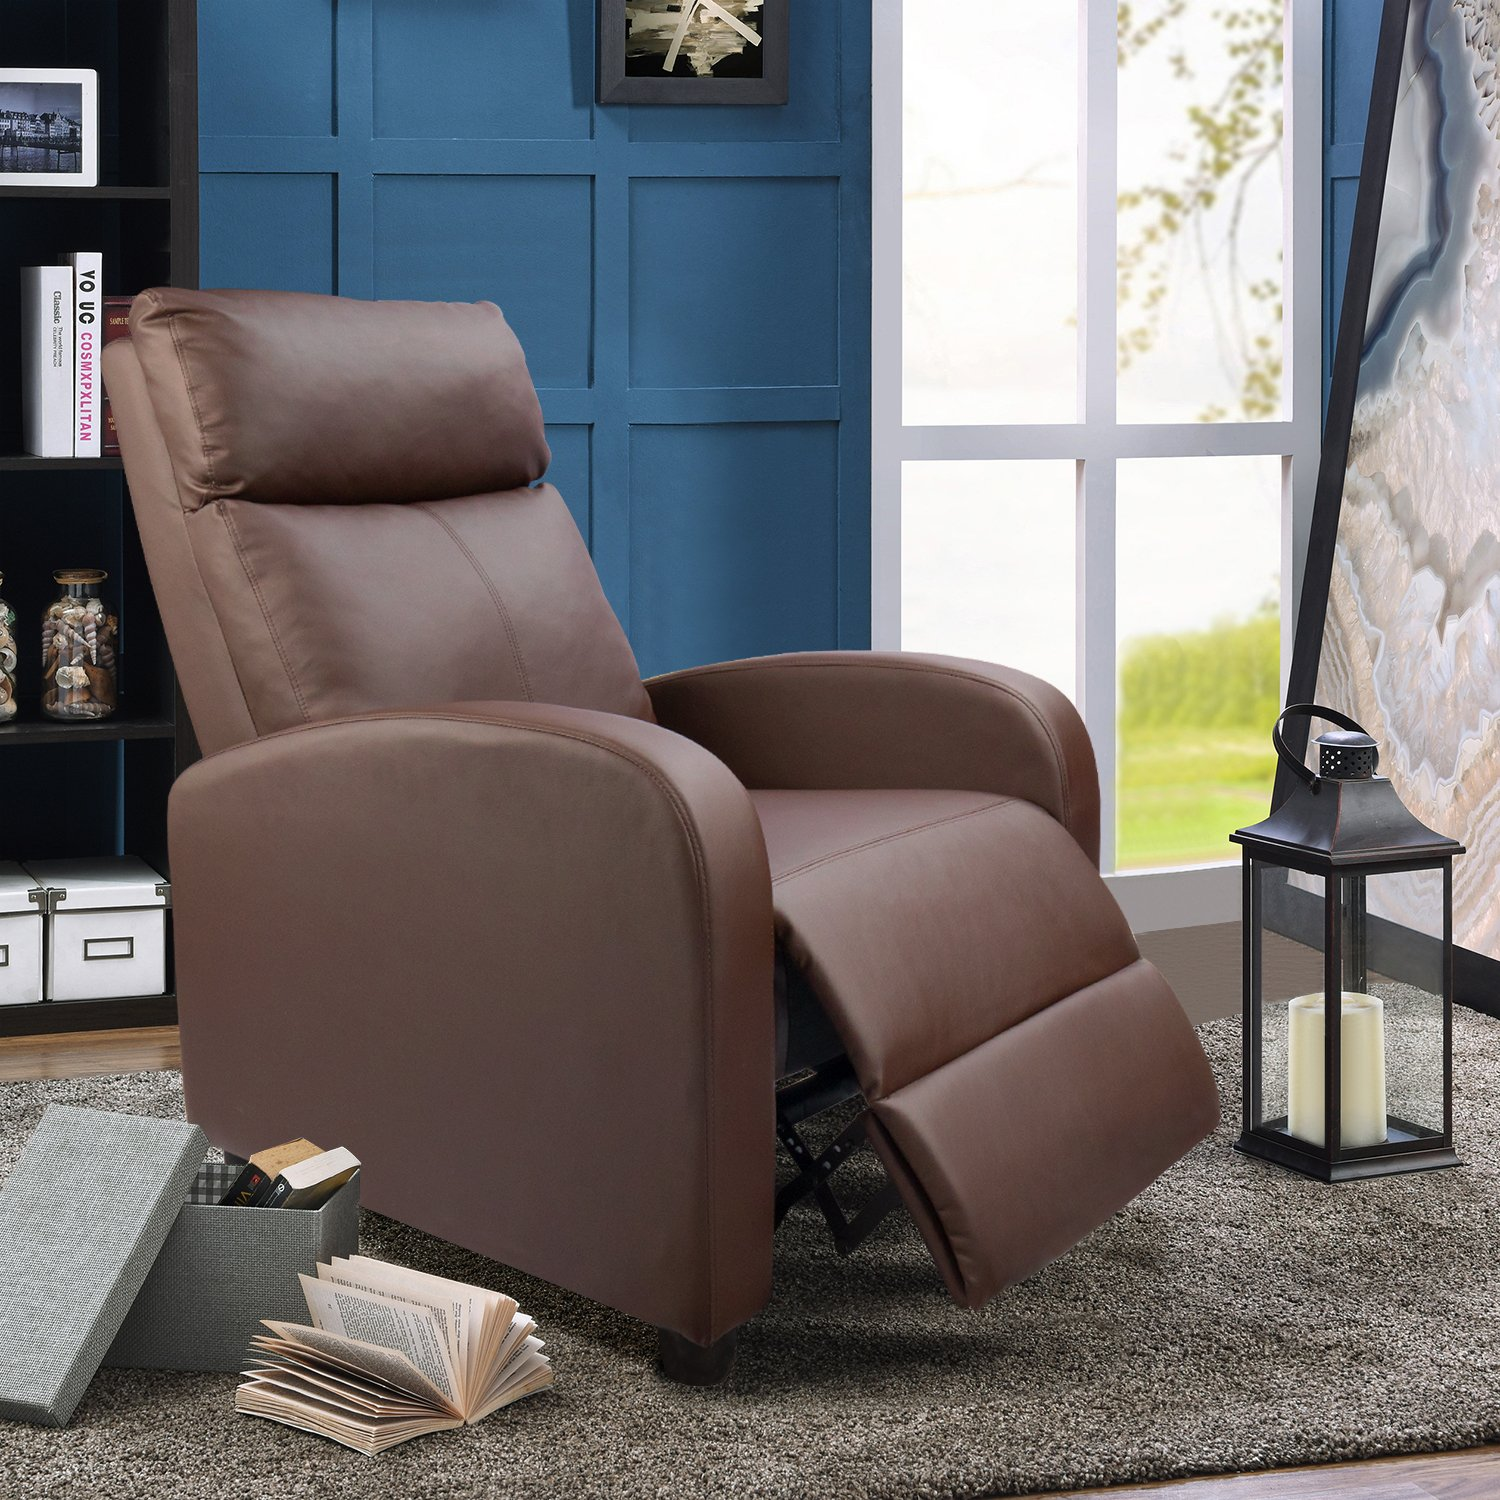 Devoko Manual Single Recliner Chair PU Leather Modern Living Room Sofa Padded Cushion Adjustable Home Theater Seating Brown